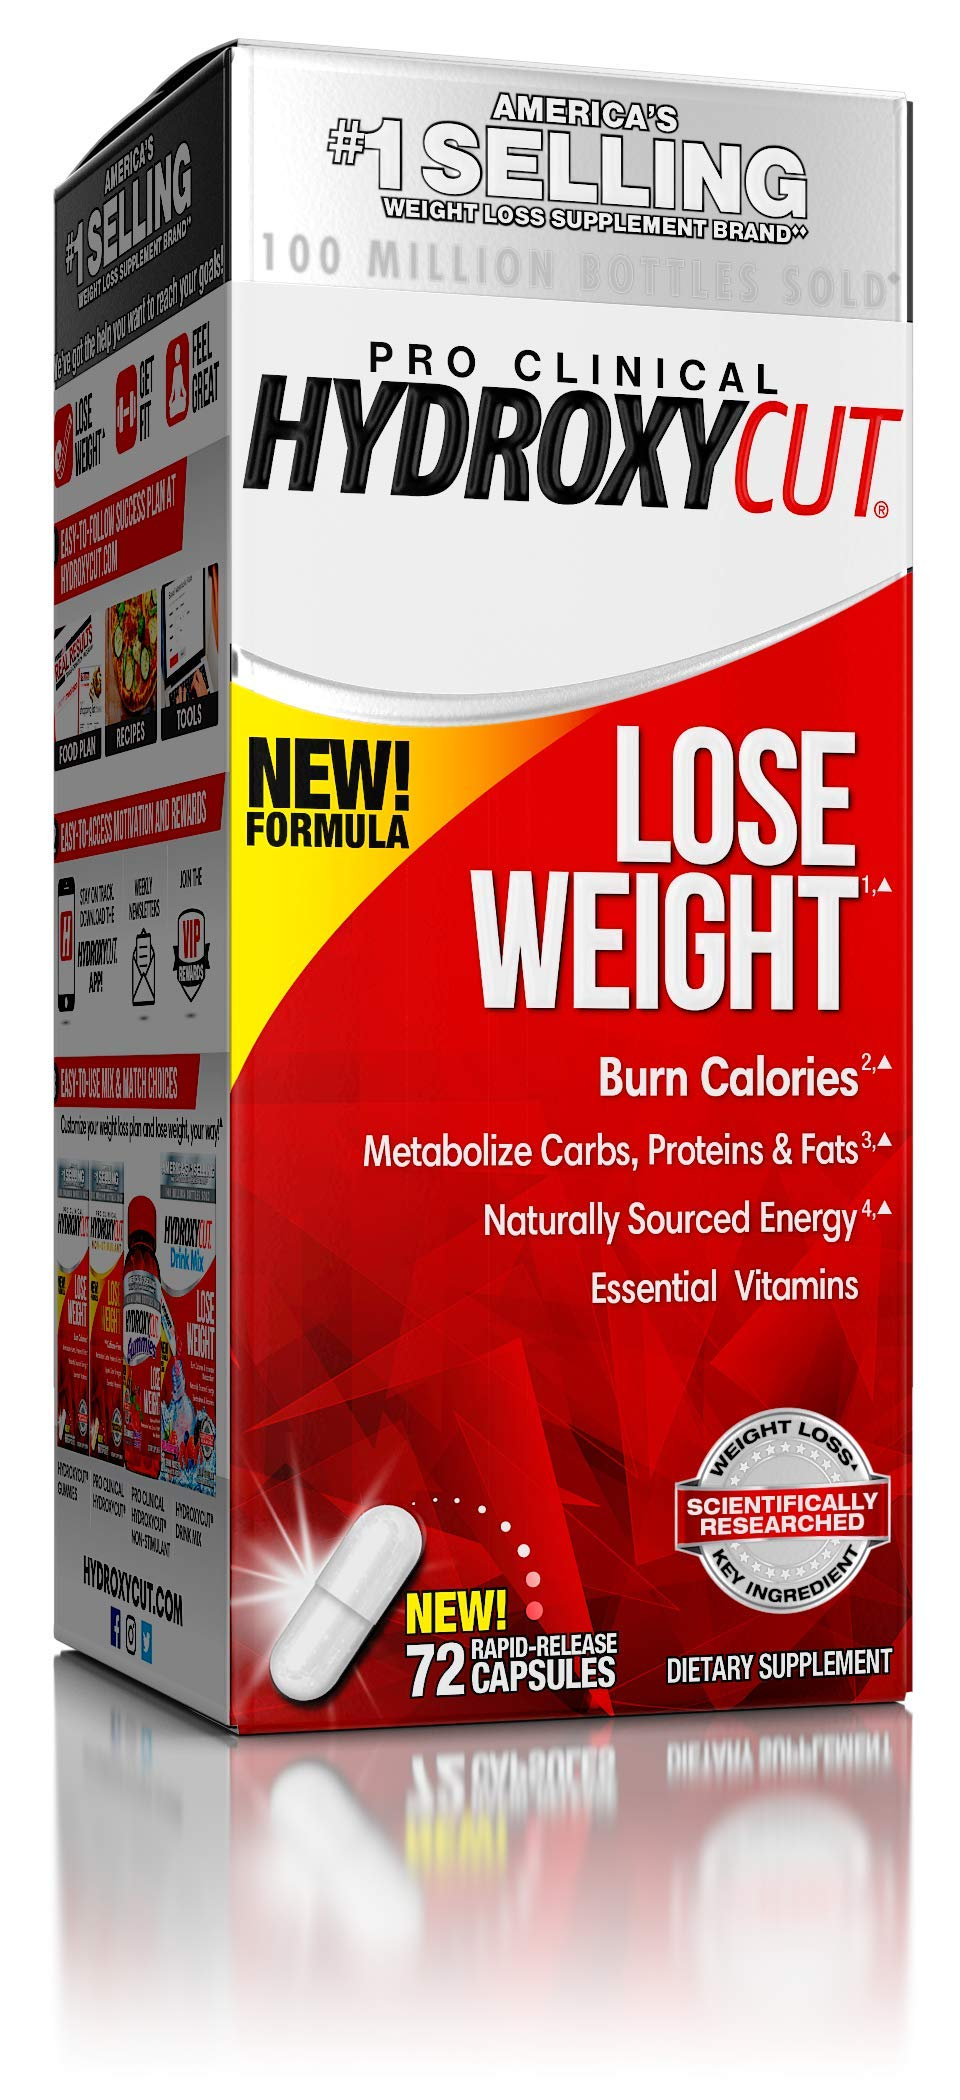 Hydroxycut Pro Clinical Weight Loss Supplements with Apple Cider Vinegar and Vitamins, Burn Calories & Get Naturally Sourced Energy, 72 Pills by Hydroxycut